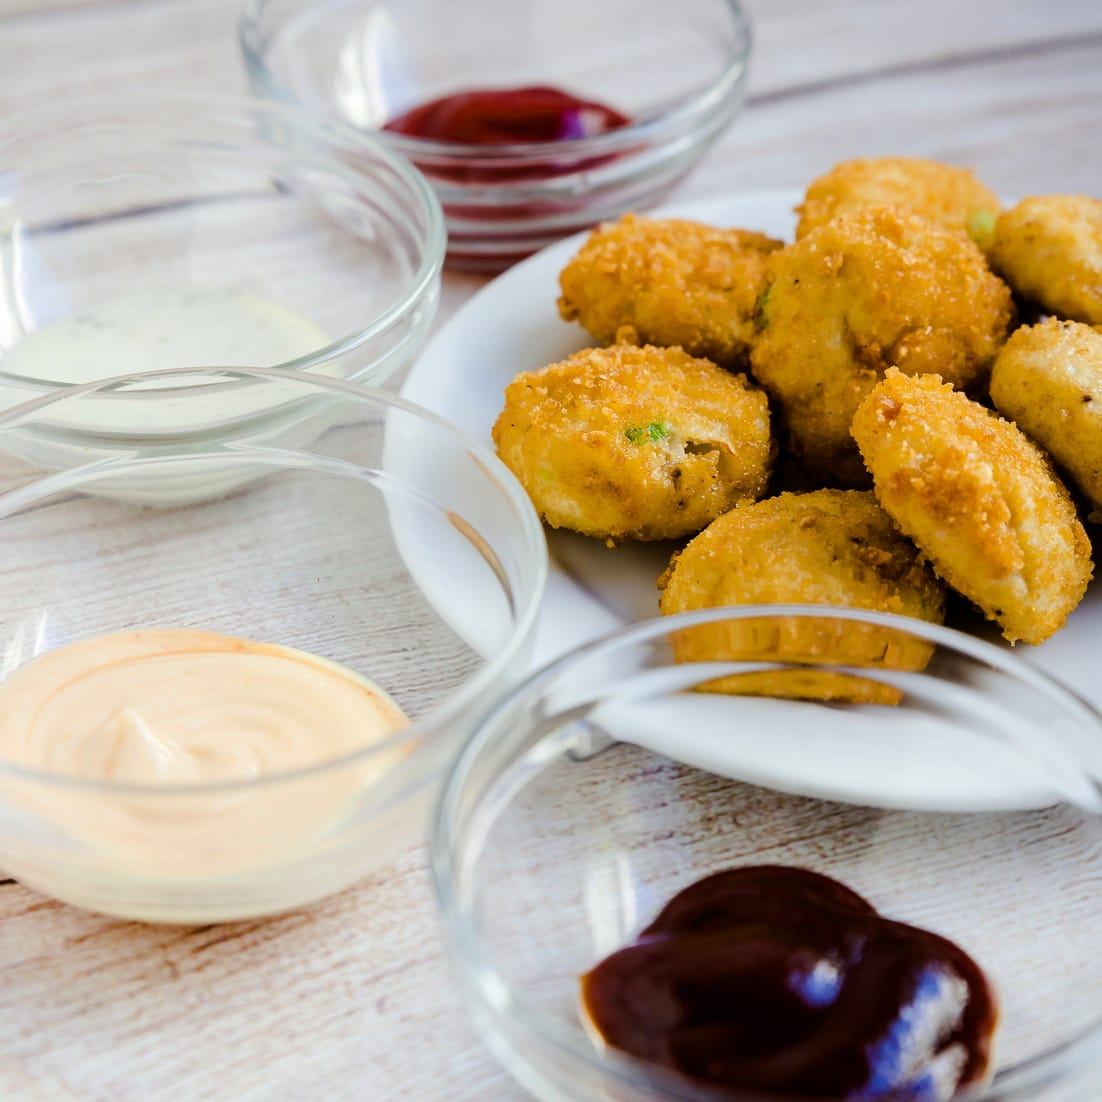 Air fried keto chicken nuggests with various keto dipping sauces